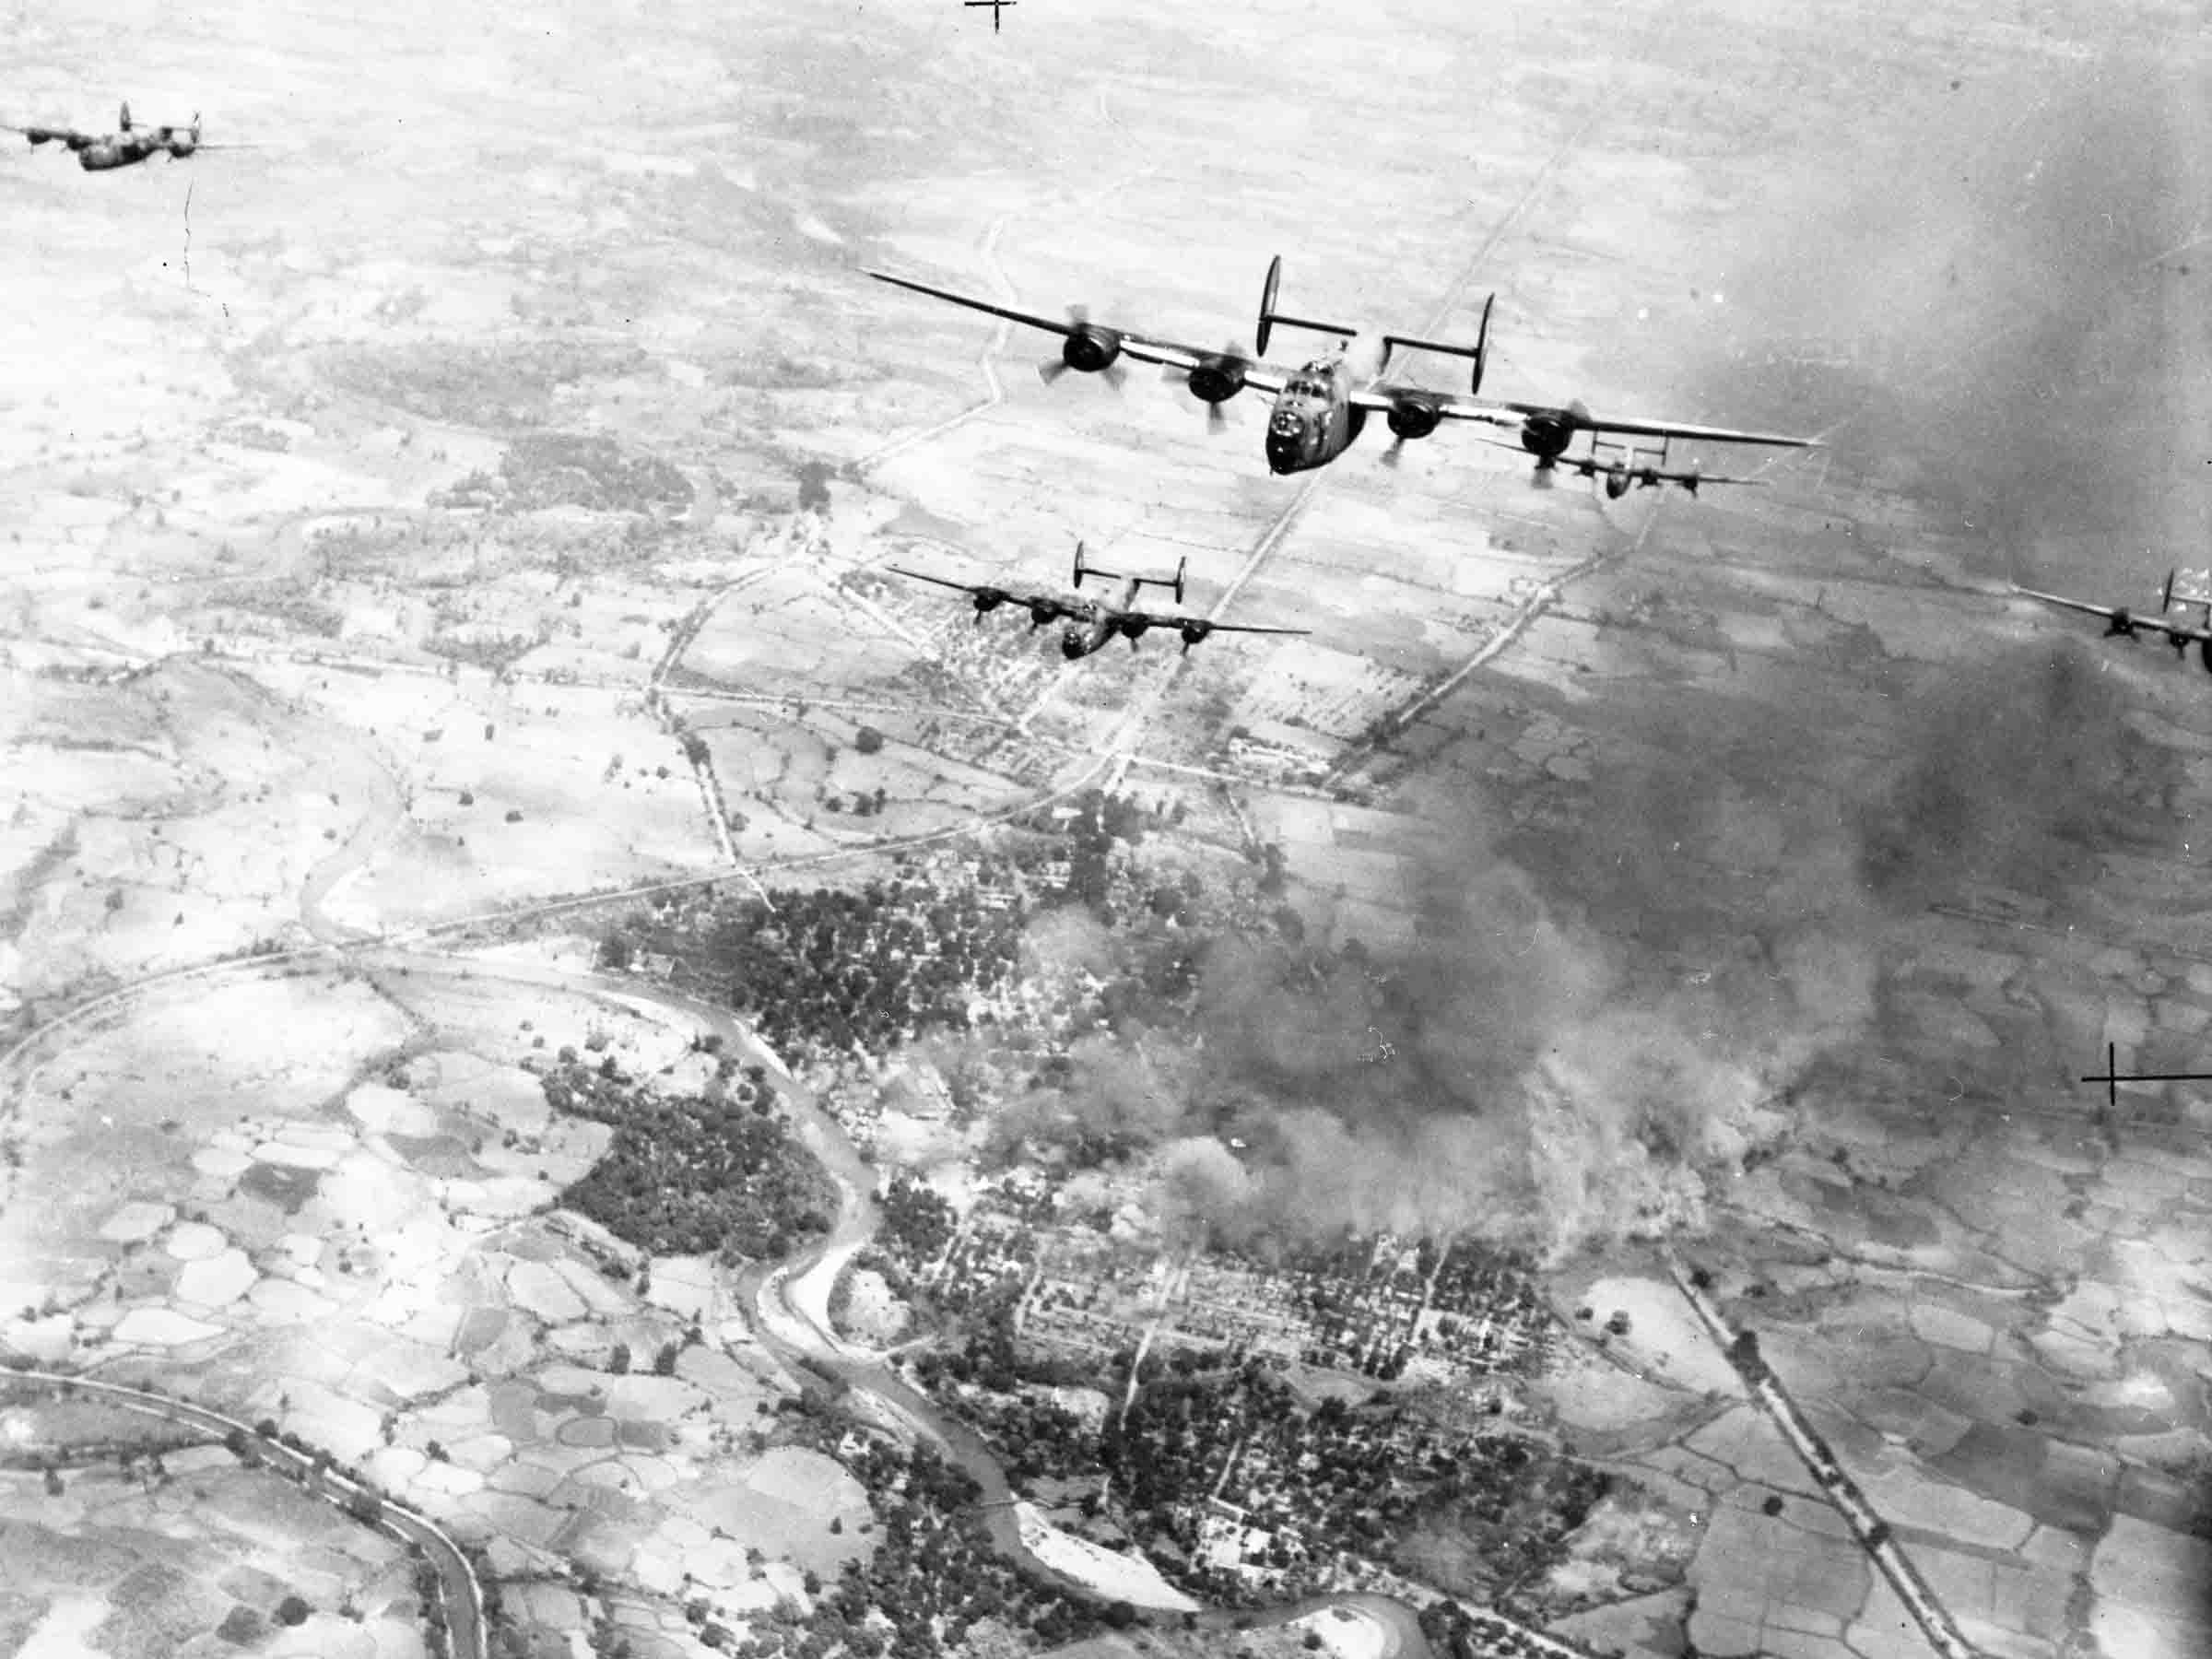 Consolidated Liberators B.VI of 355 Squadron, above front view of formation on operations over Burma, 1945 (RAFM P014738)